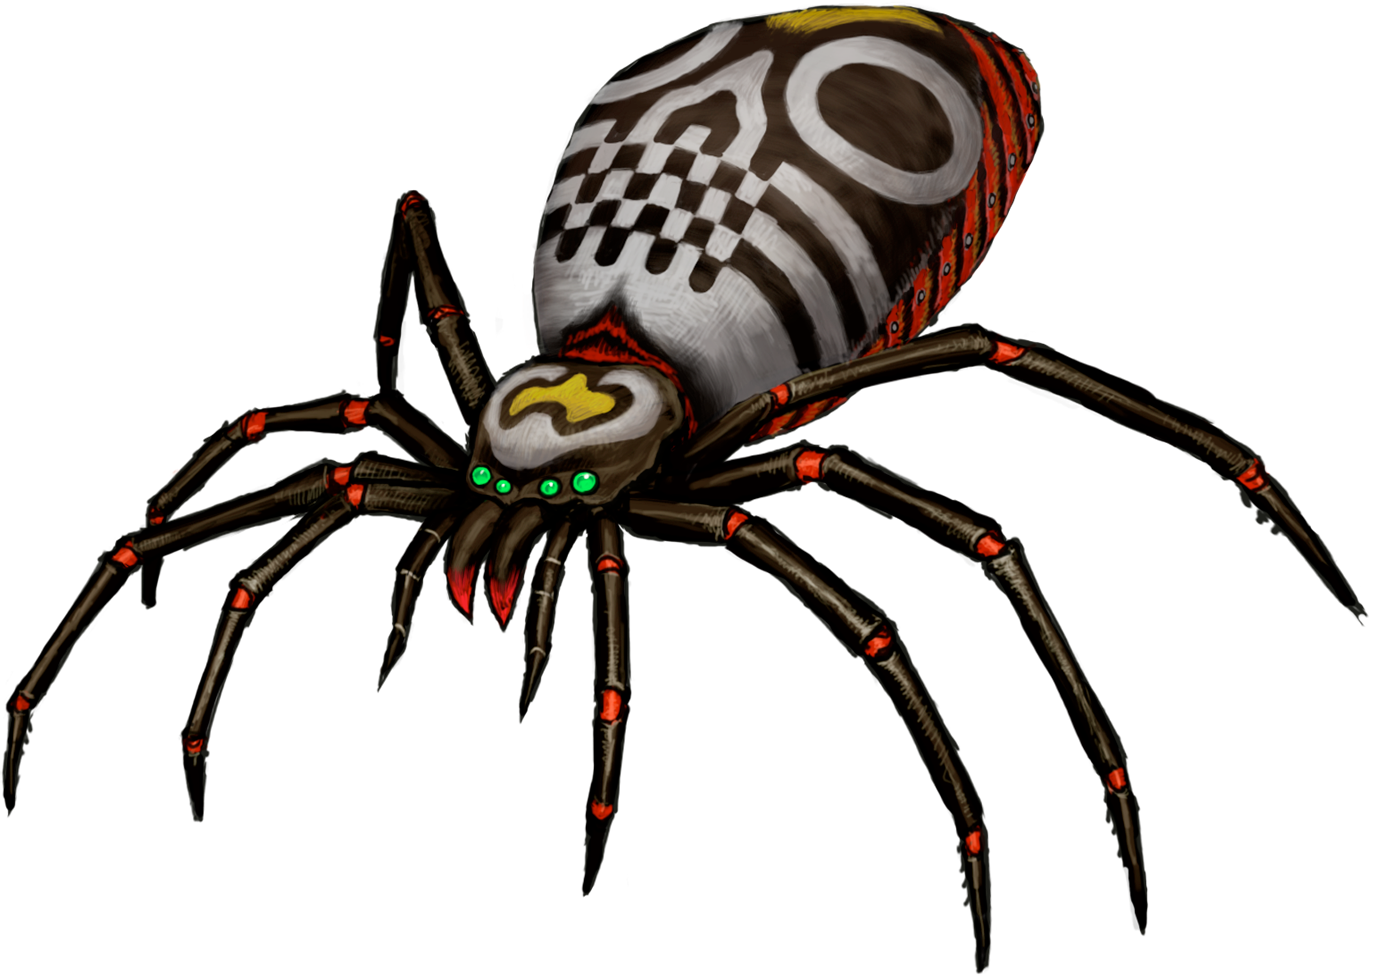 http://images.wikia.com/zelda/images/3/3f/Skulltula_%28Twilight_Princess%29.png